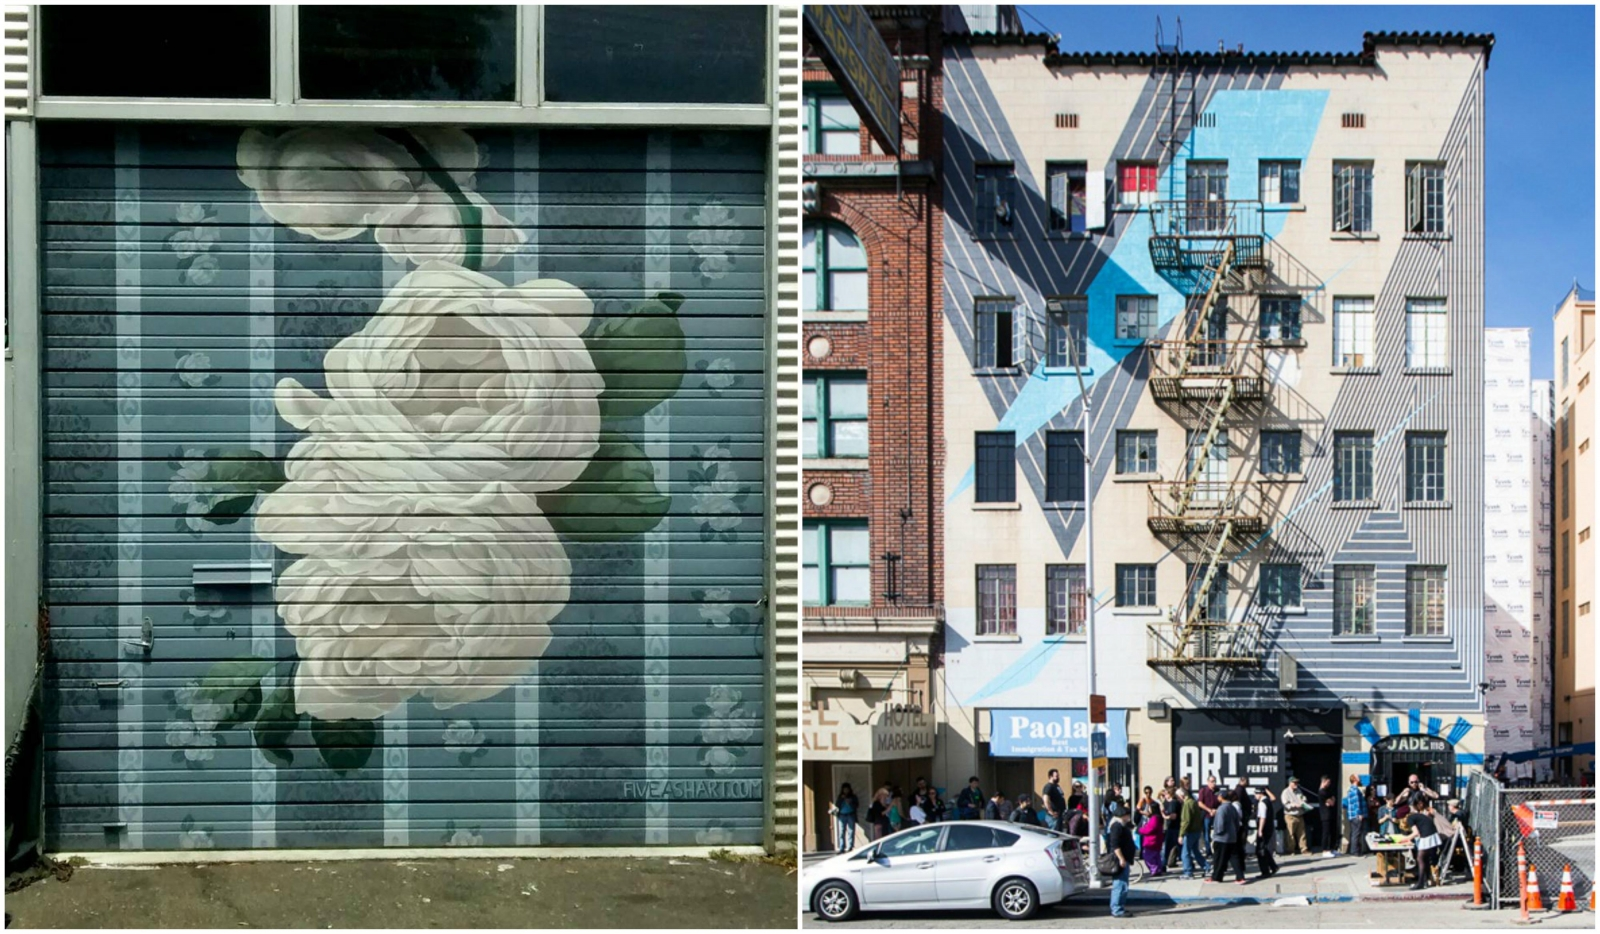 (left) A mural by Sacramento artist David Fiveash on downtown's Black Rock Automotive building; (right) The exterior of The Art Hotel by Sacramento muralist Jake Castro. Both artists will be participating in this year's Sacramento Mural Festival.